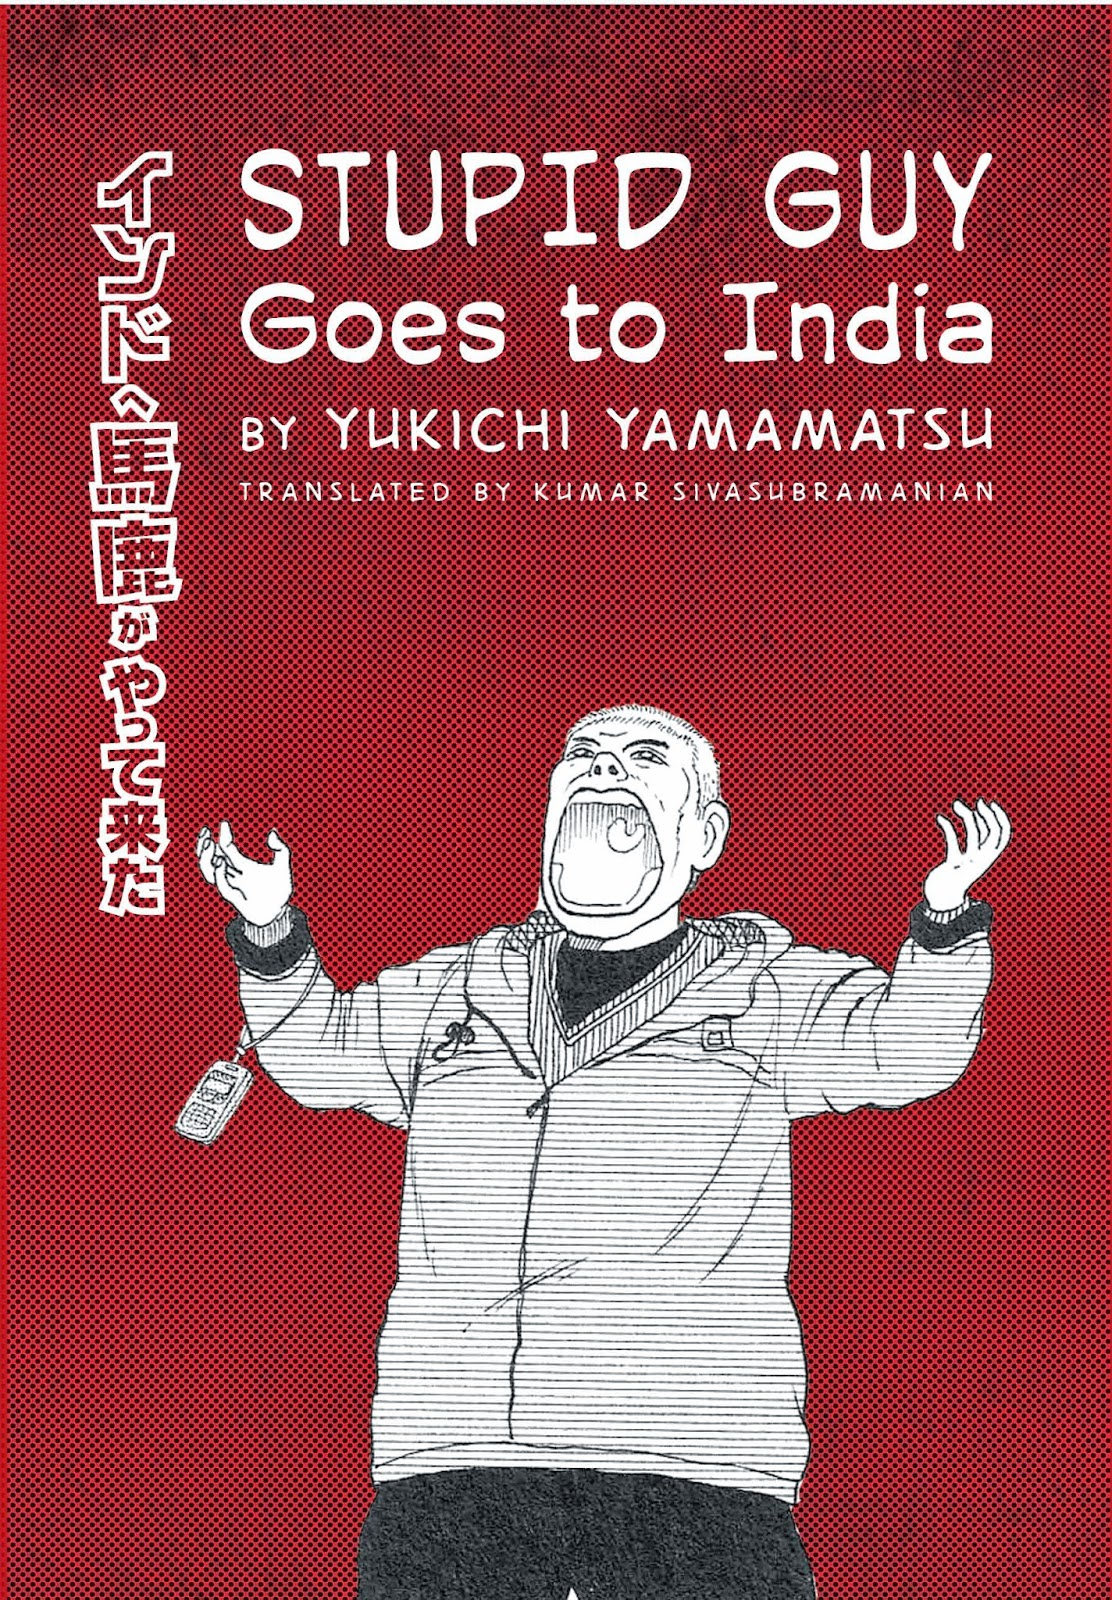 http://www.spdbooks.org/Producte/9789381626399/stupid-guy-goes-to-india.aspx